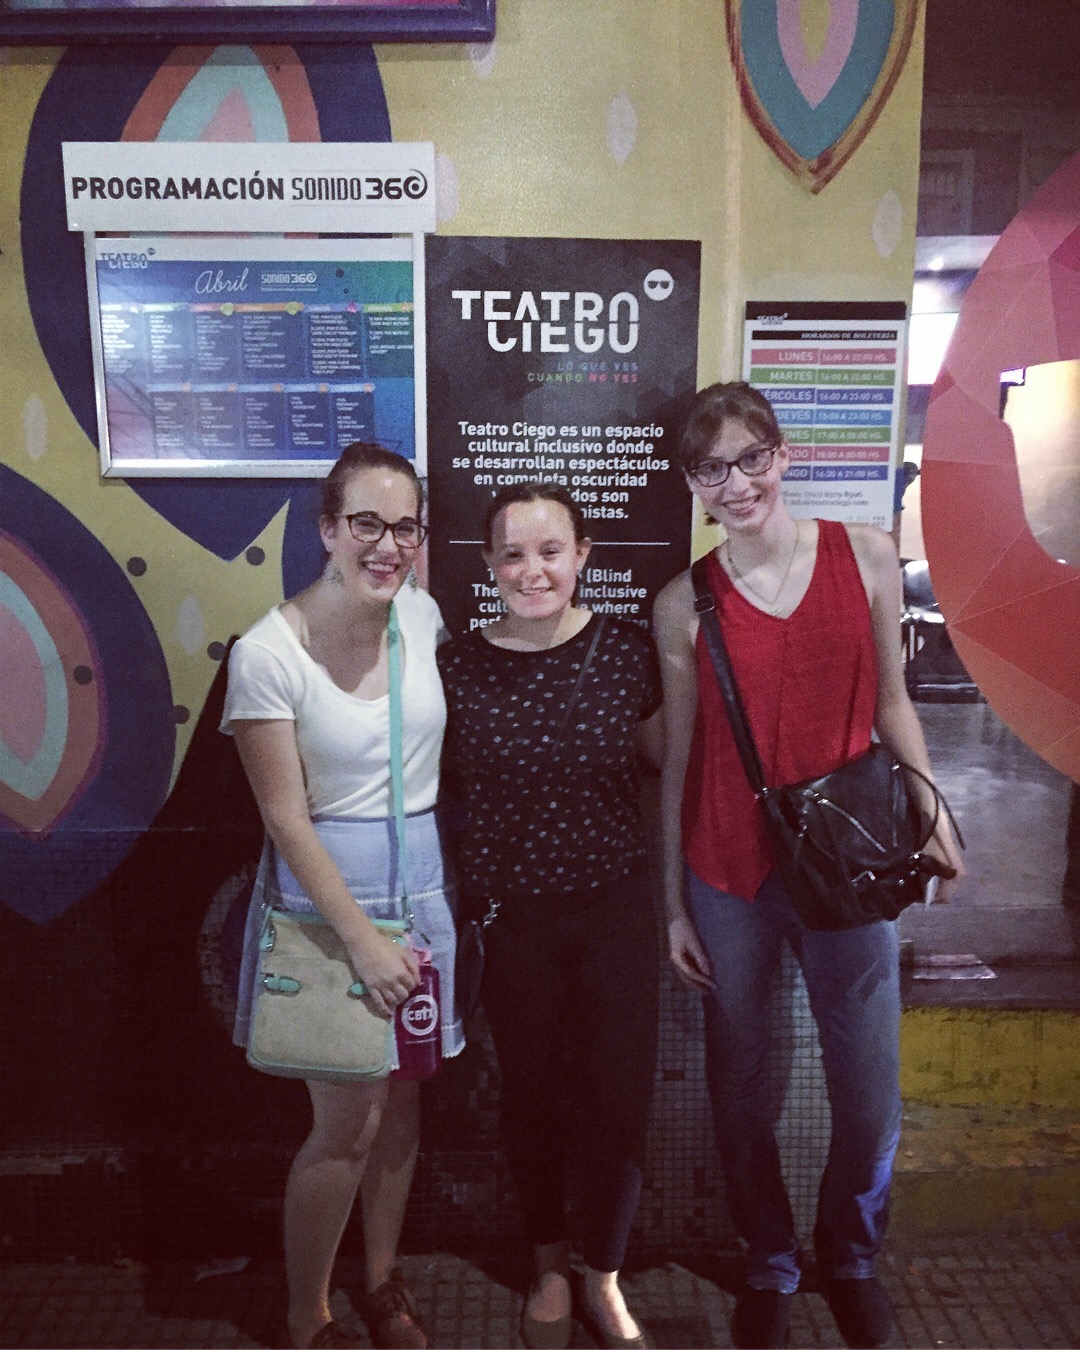 CAPAStudyAbroad_Buenos Aires_Spring2018_From Claire Shrader - Fun night with these friends at Teatro Ciego